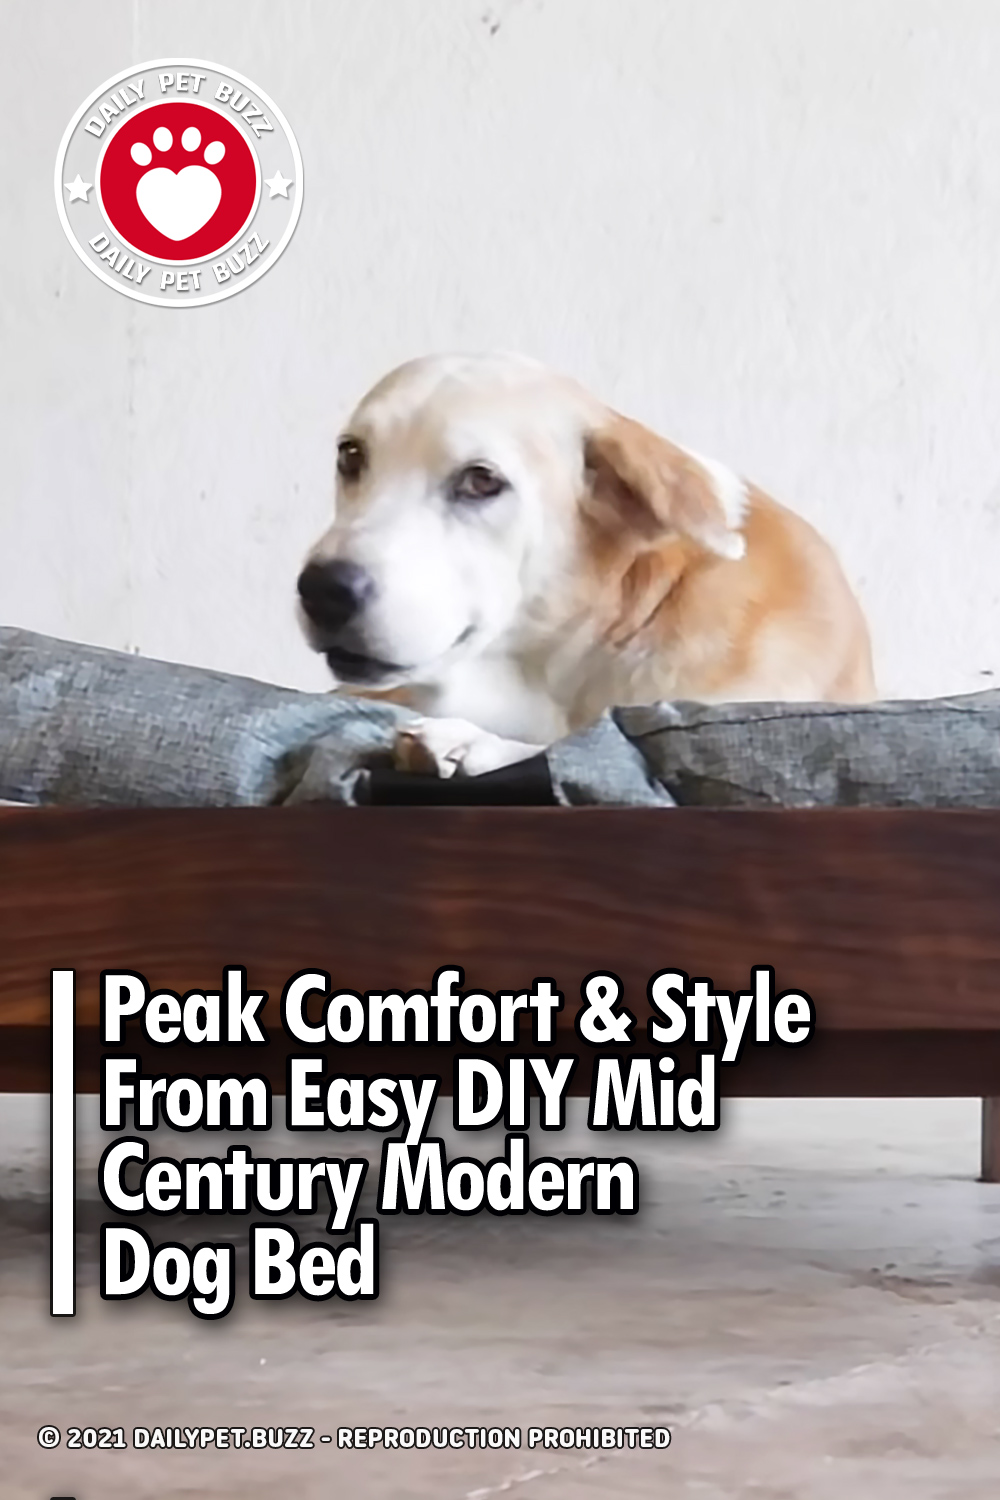 Peak Comfort & Style From Easy DIY Mid Century Modern Dog Bed